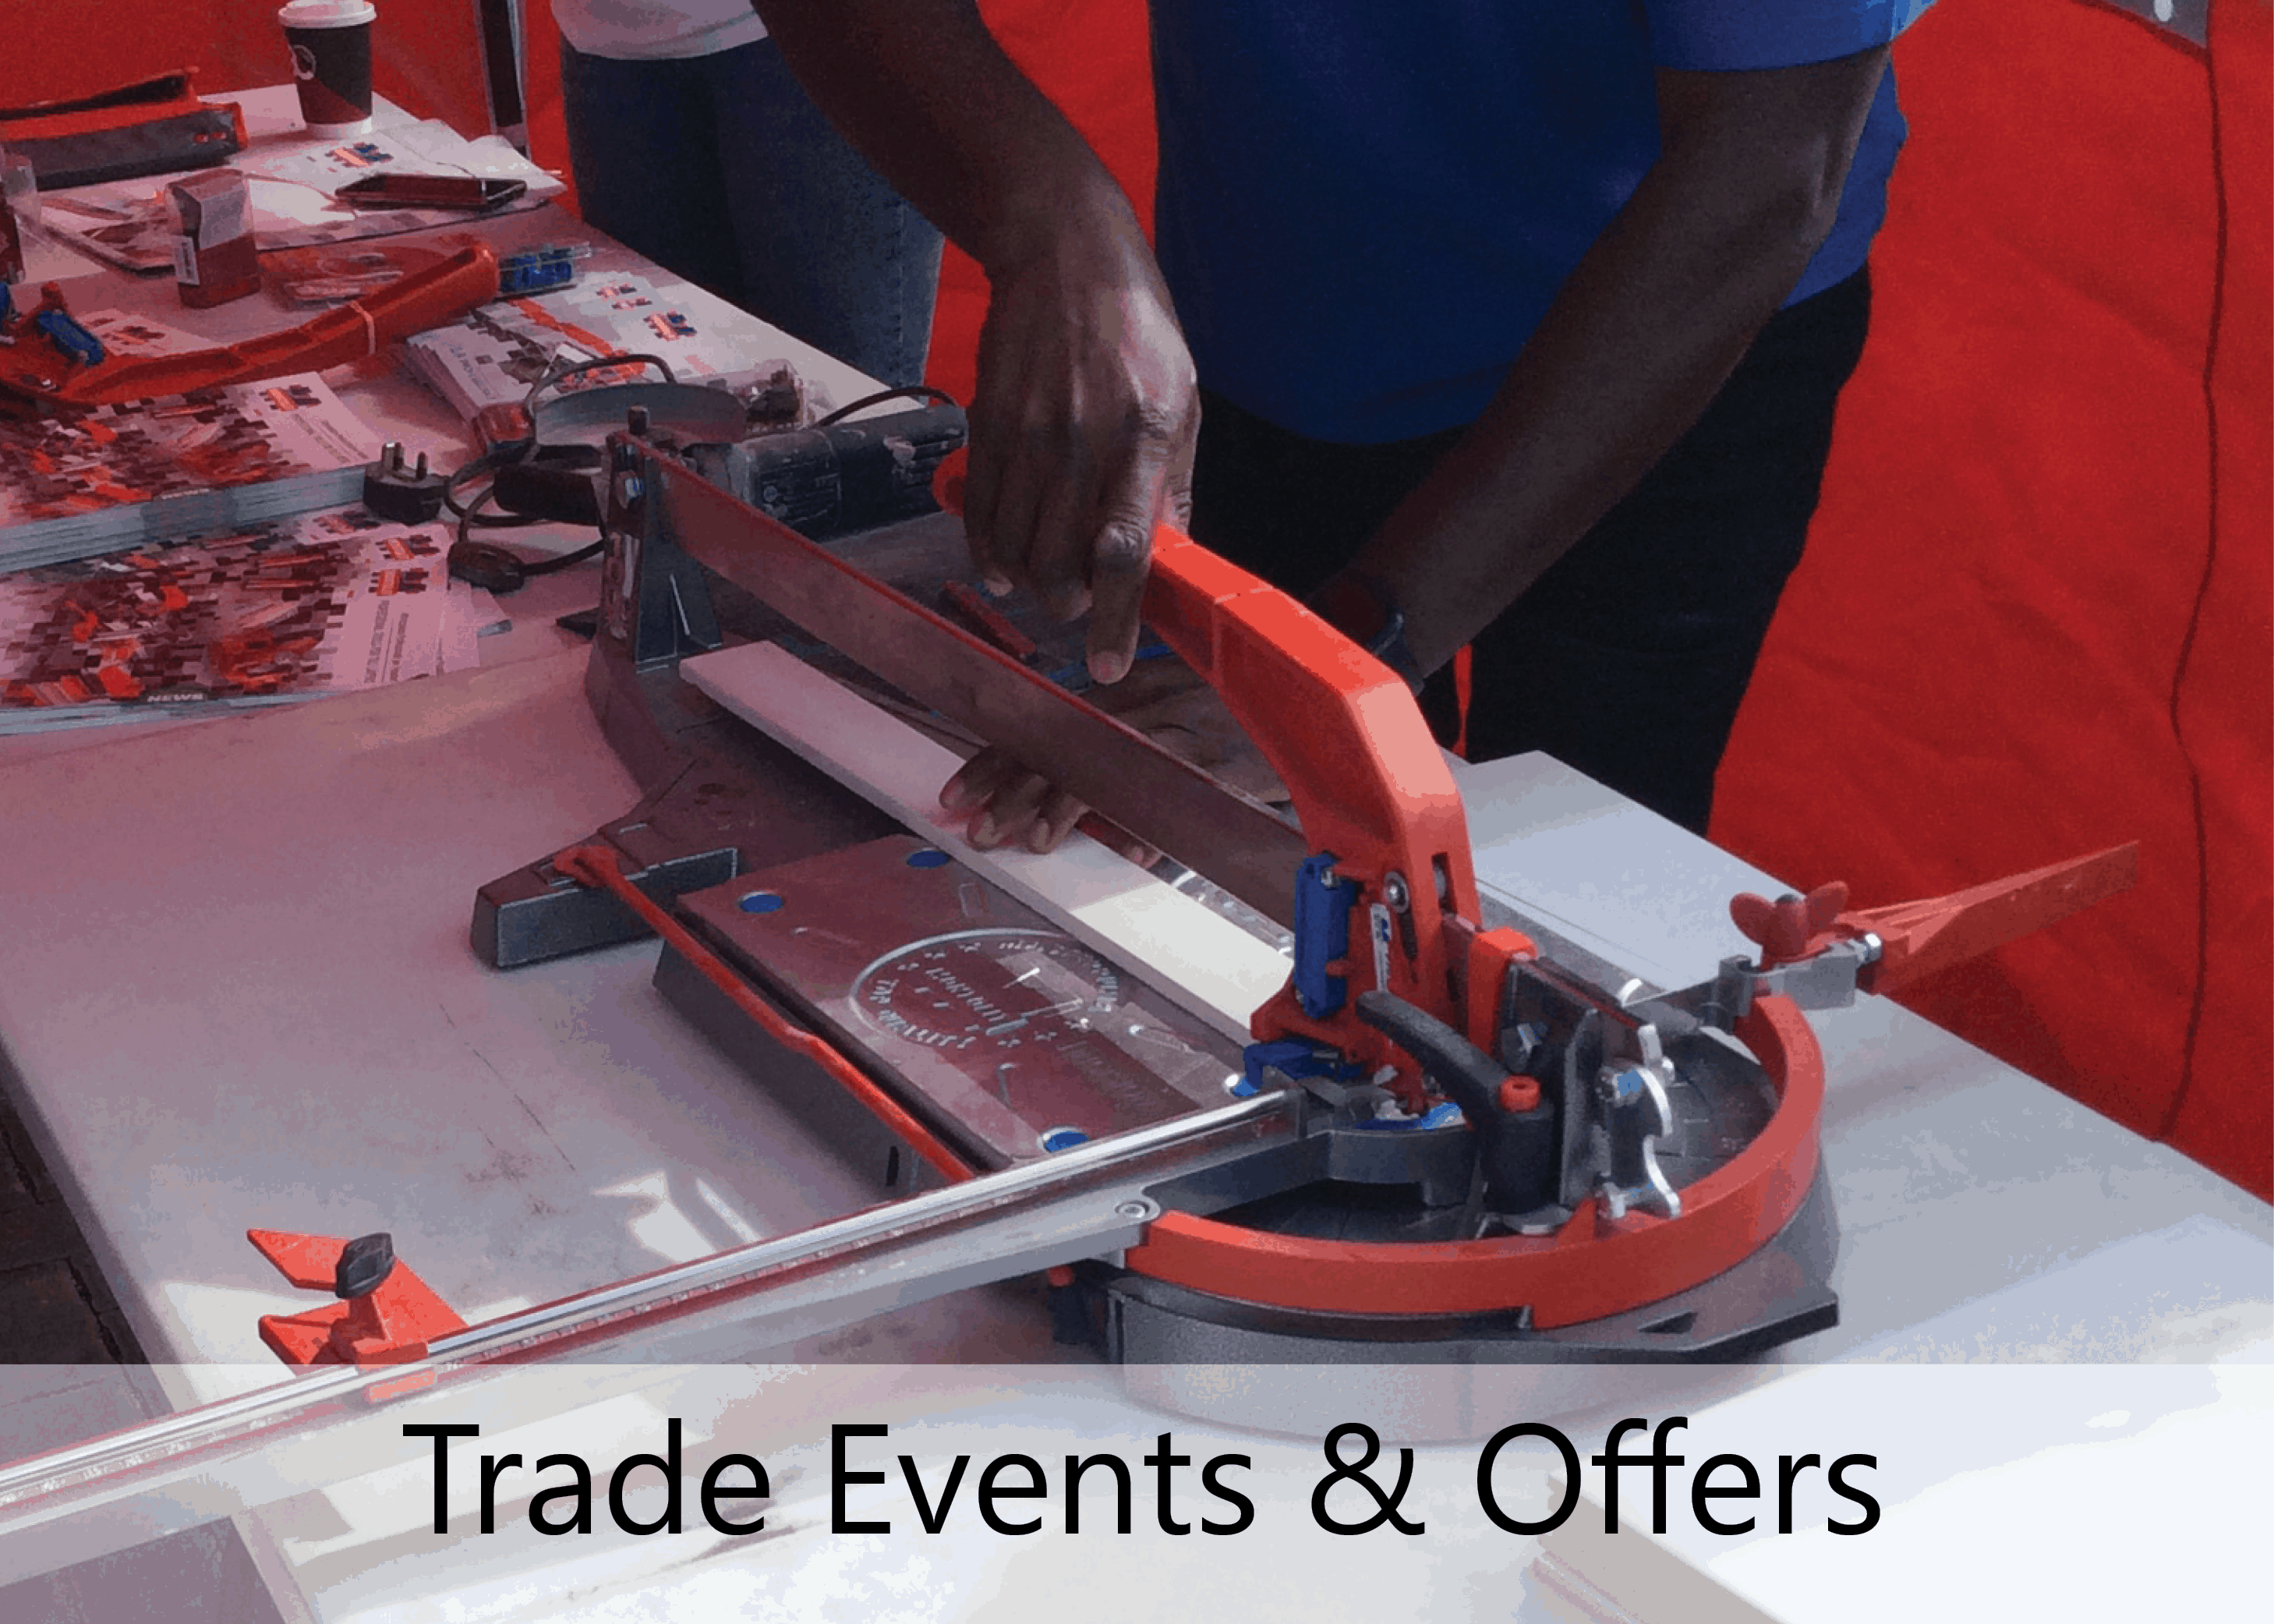 trade events and offers image web